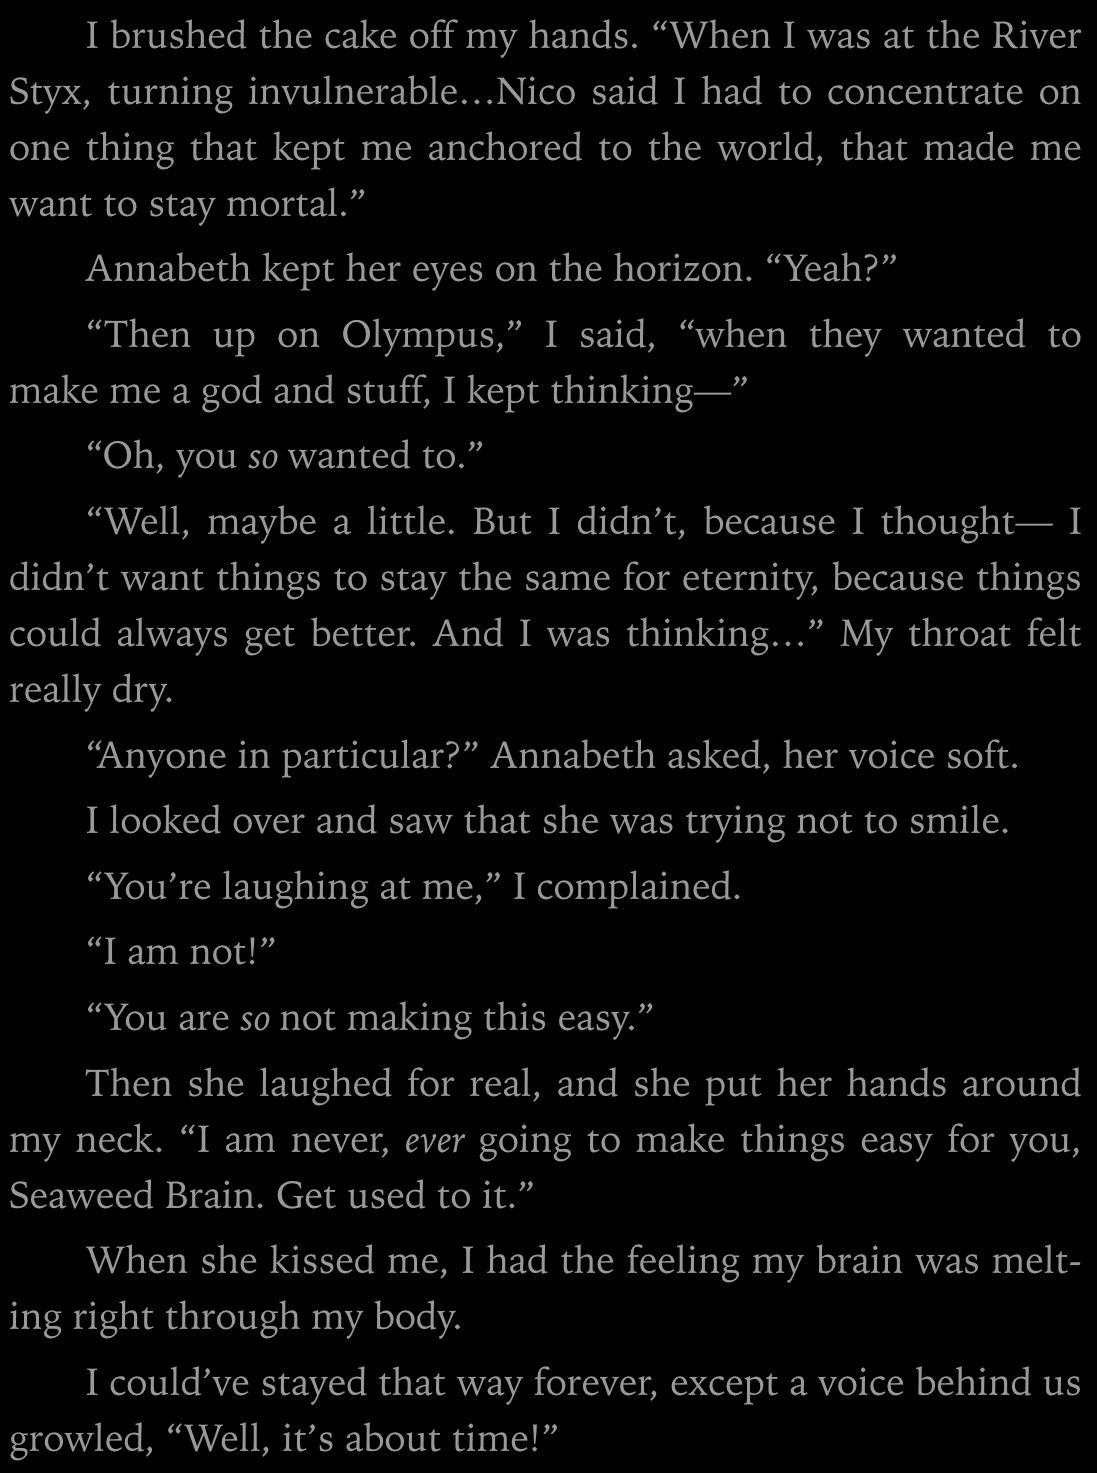 PERCABETH!!! They finally get together. And of course Annabeth would never make it easy for her Seaweed Brain.